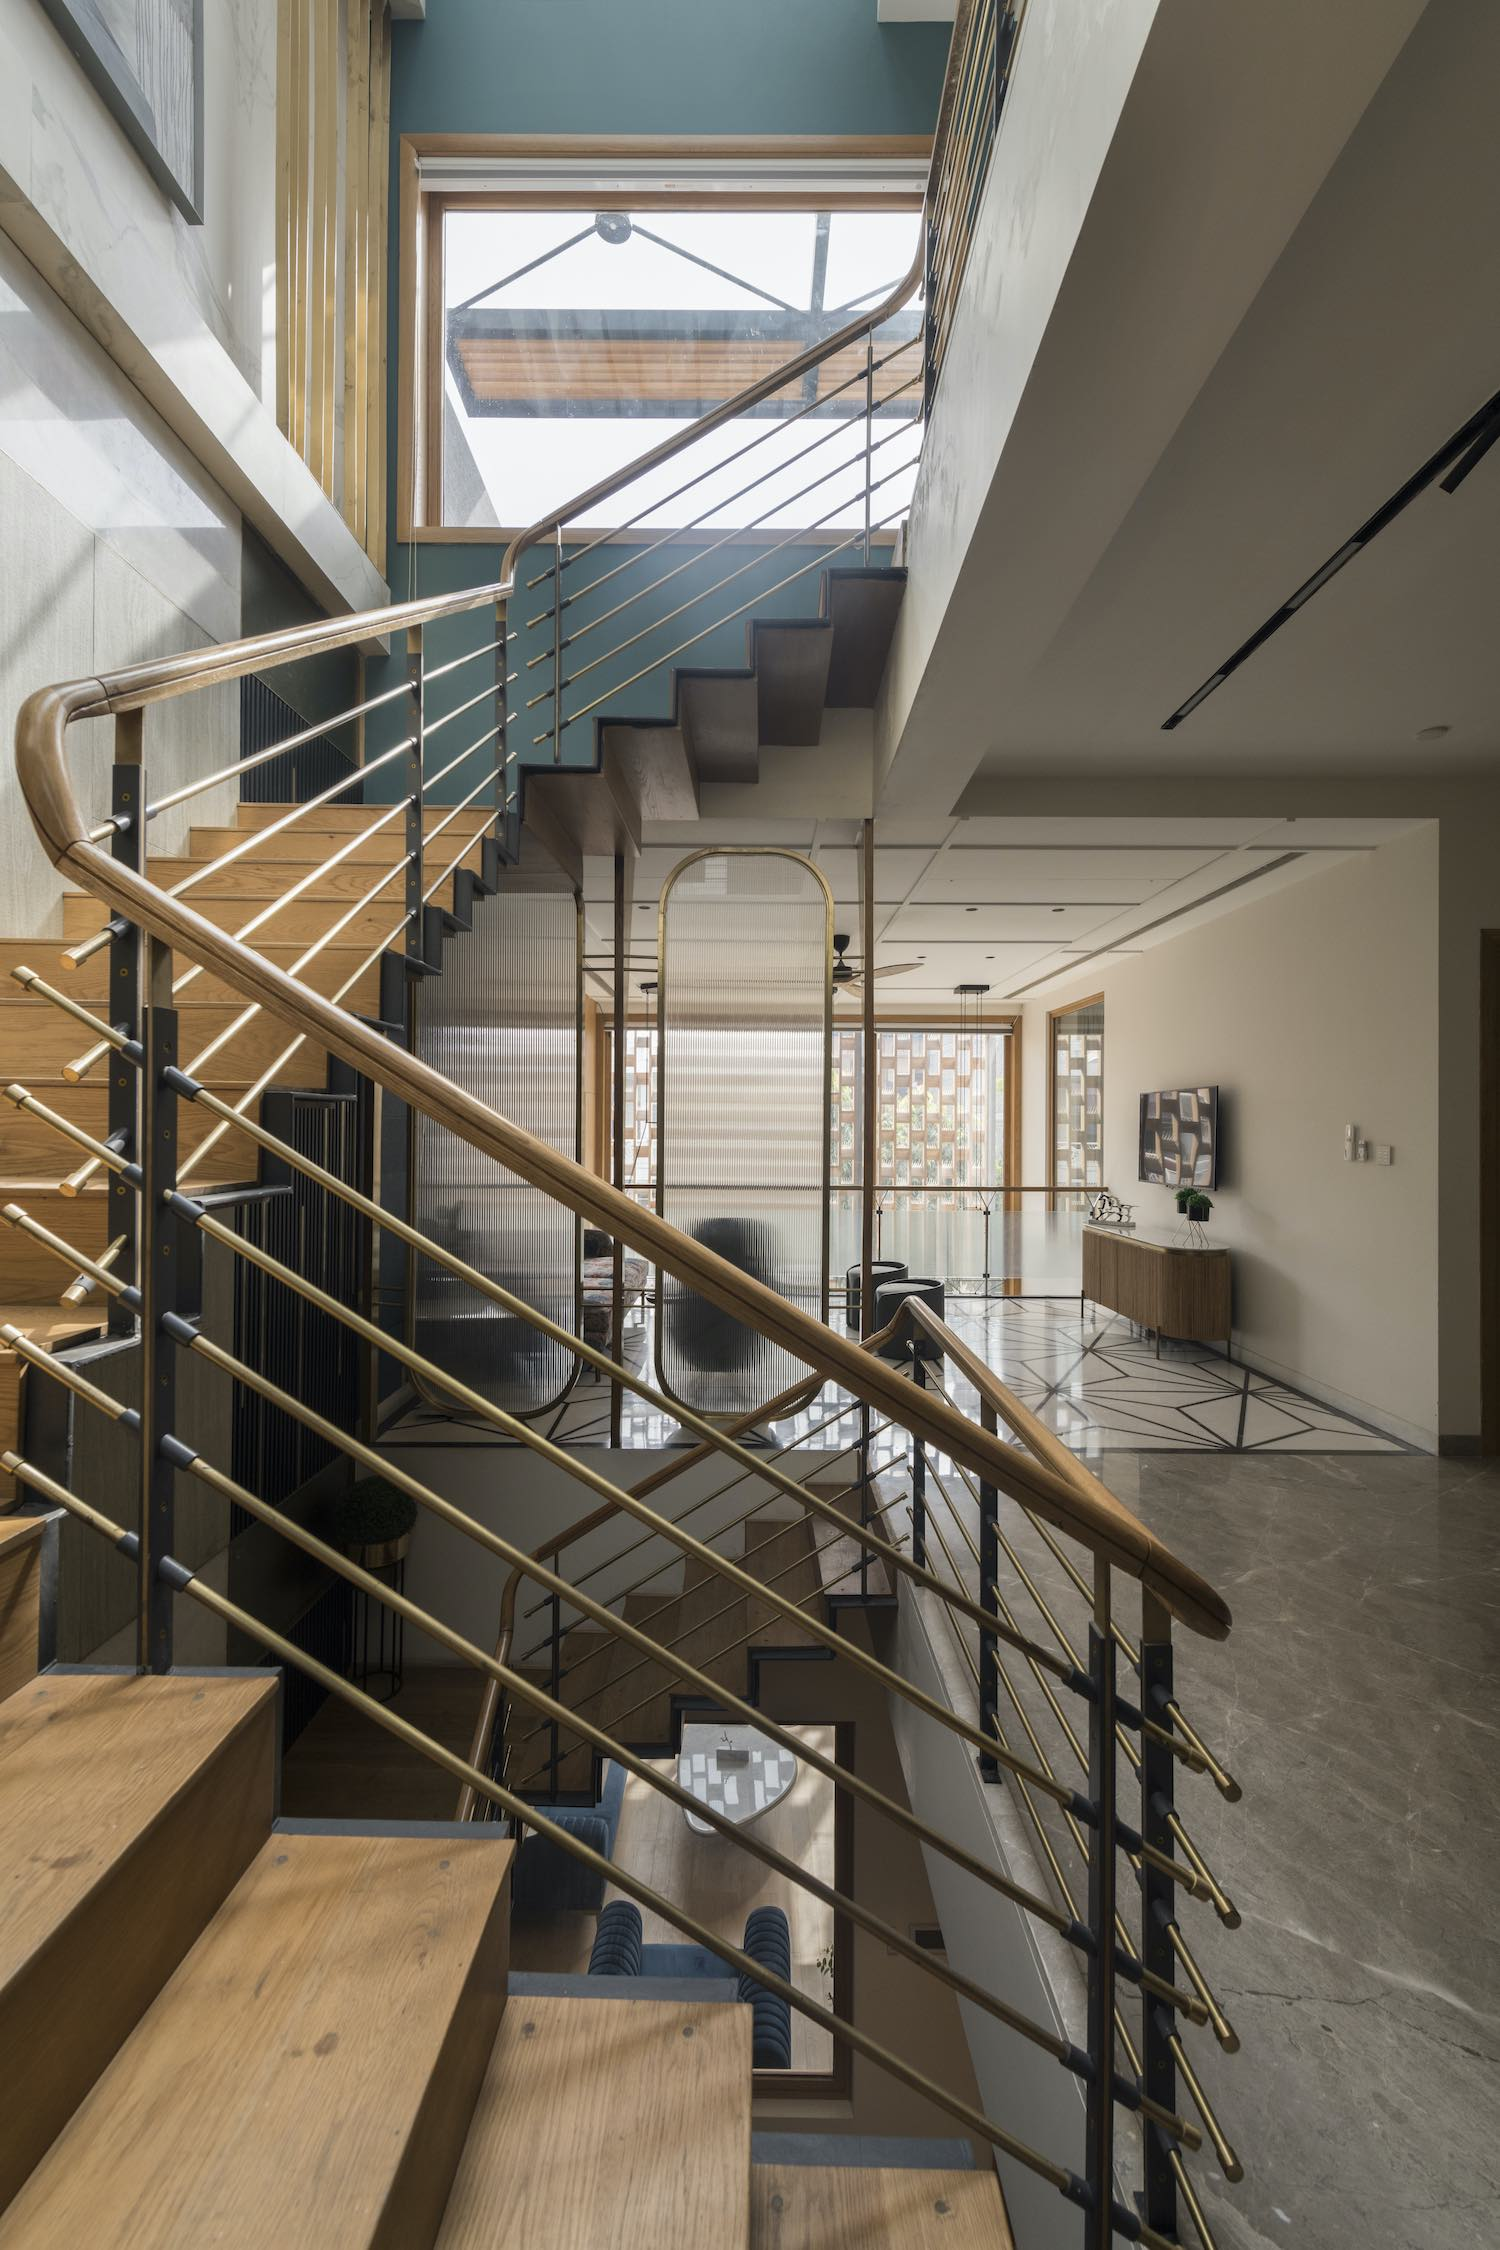 stair connecting ground floor to first floor